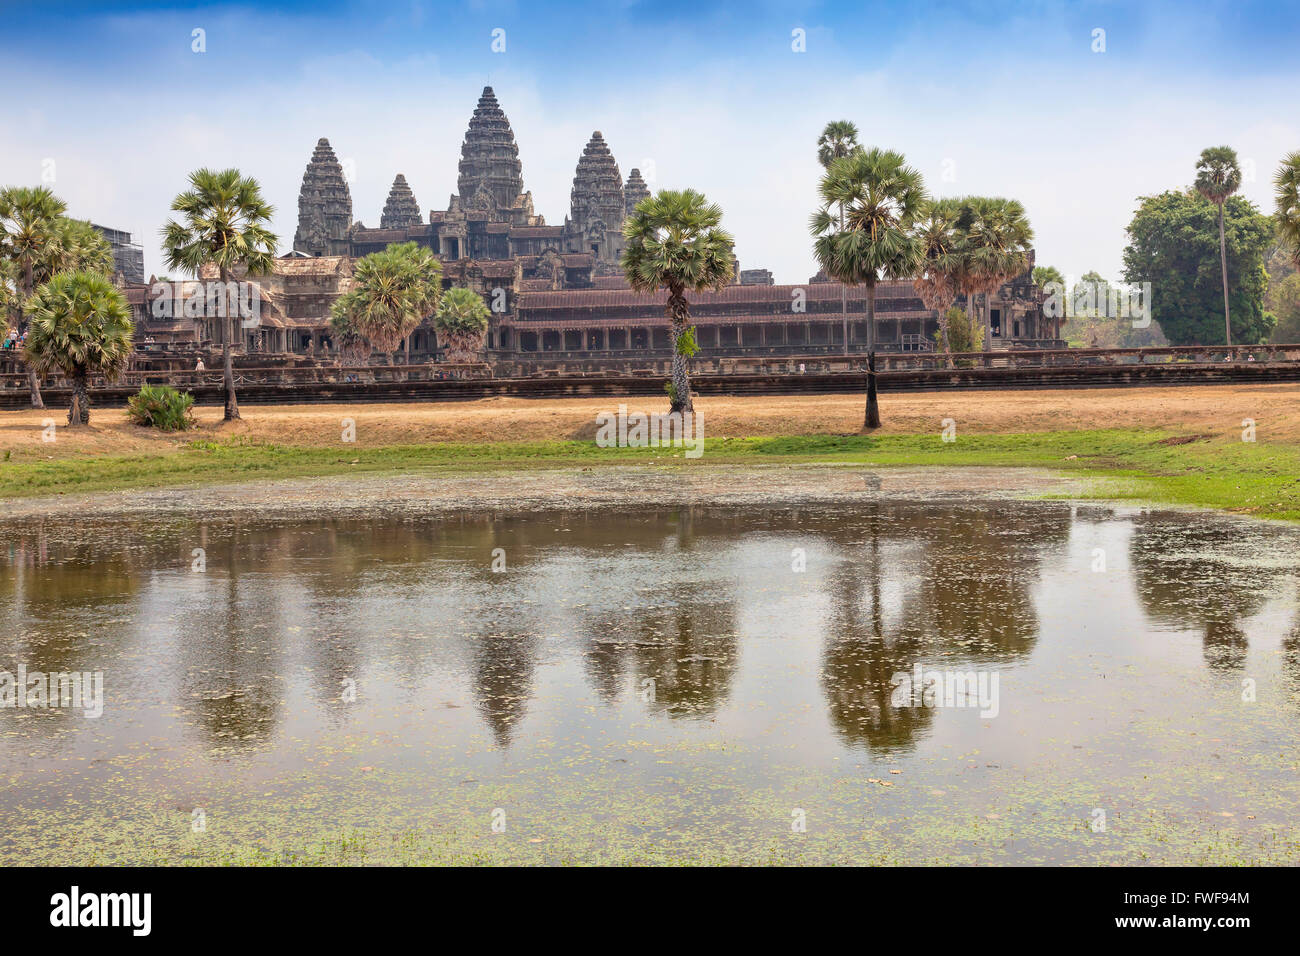 PEOPLE at the entrance to Angkor Wat temple in Cambodia UNESCO World Heritage Site, 7th Wonder of the World,Archaeological - Stock Image